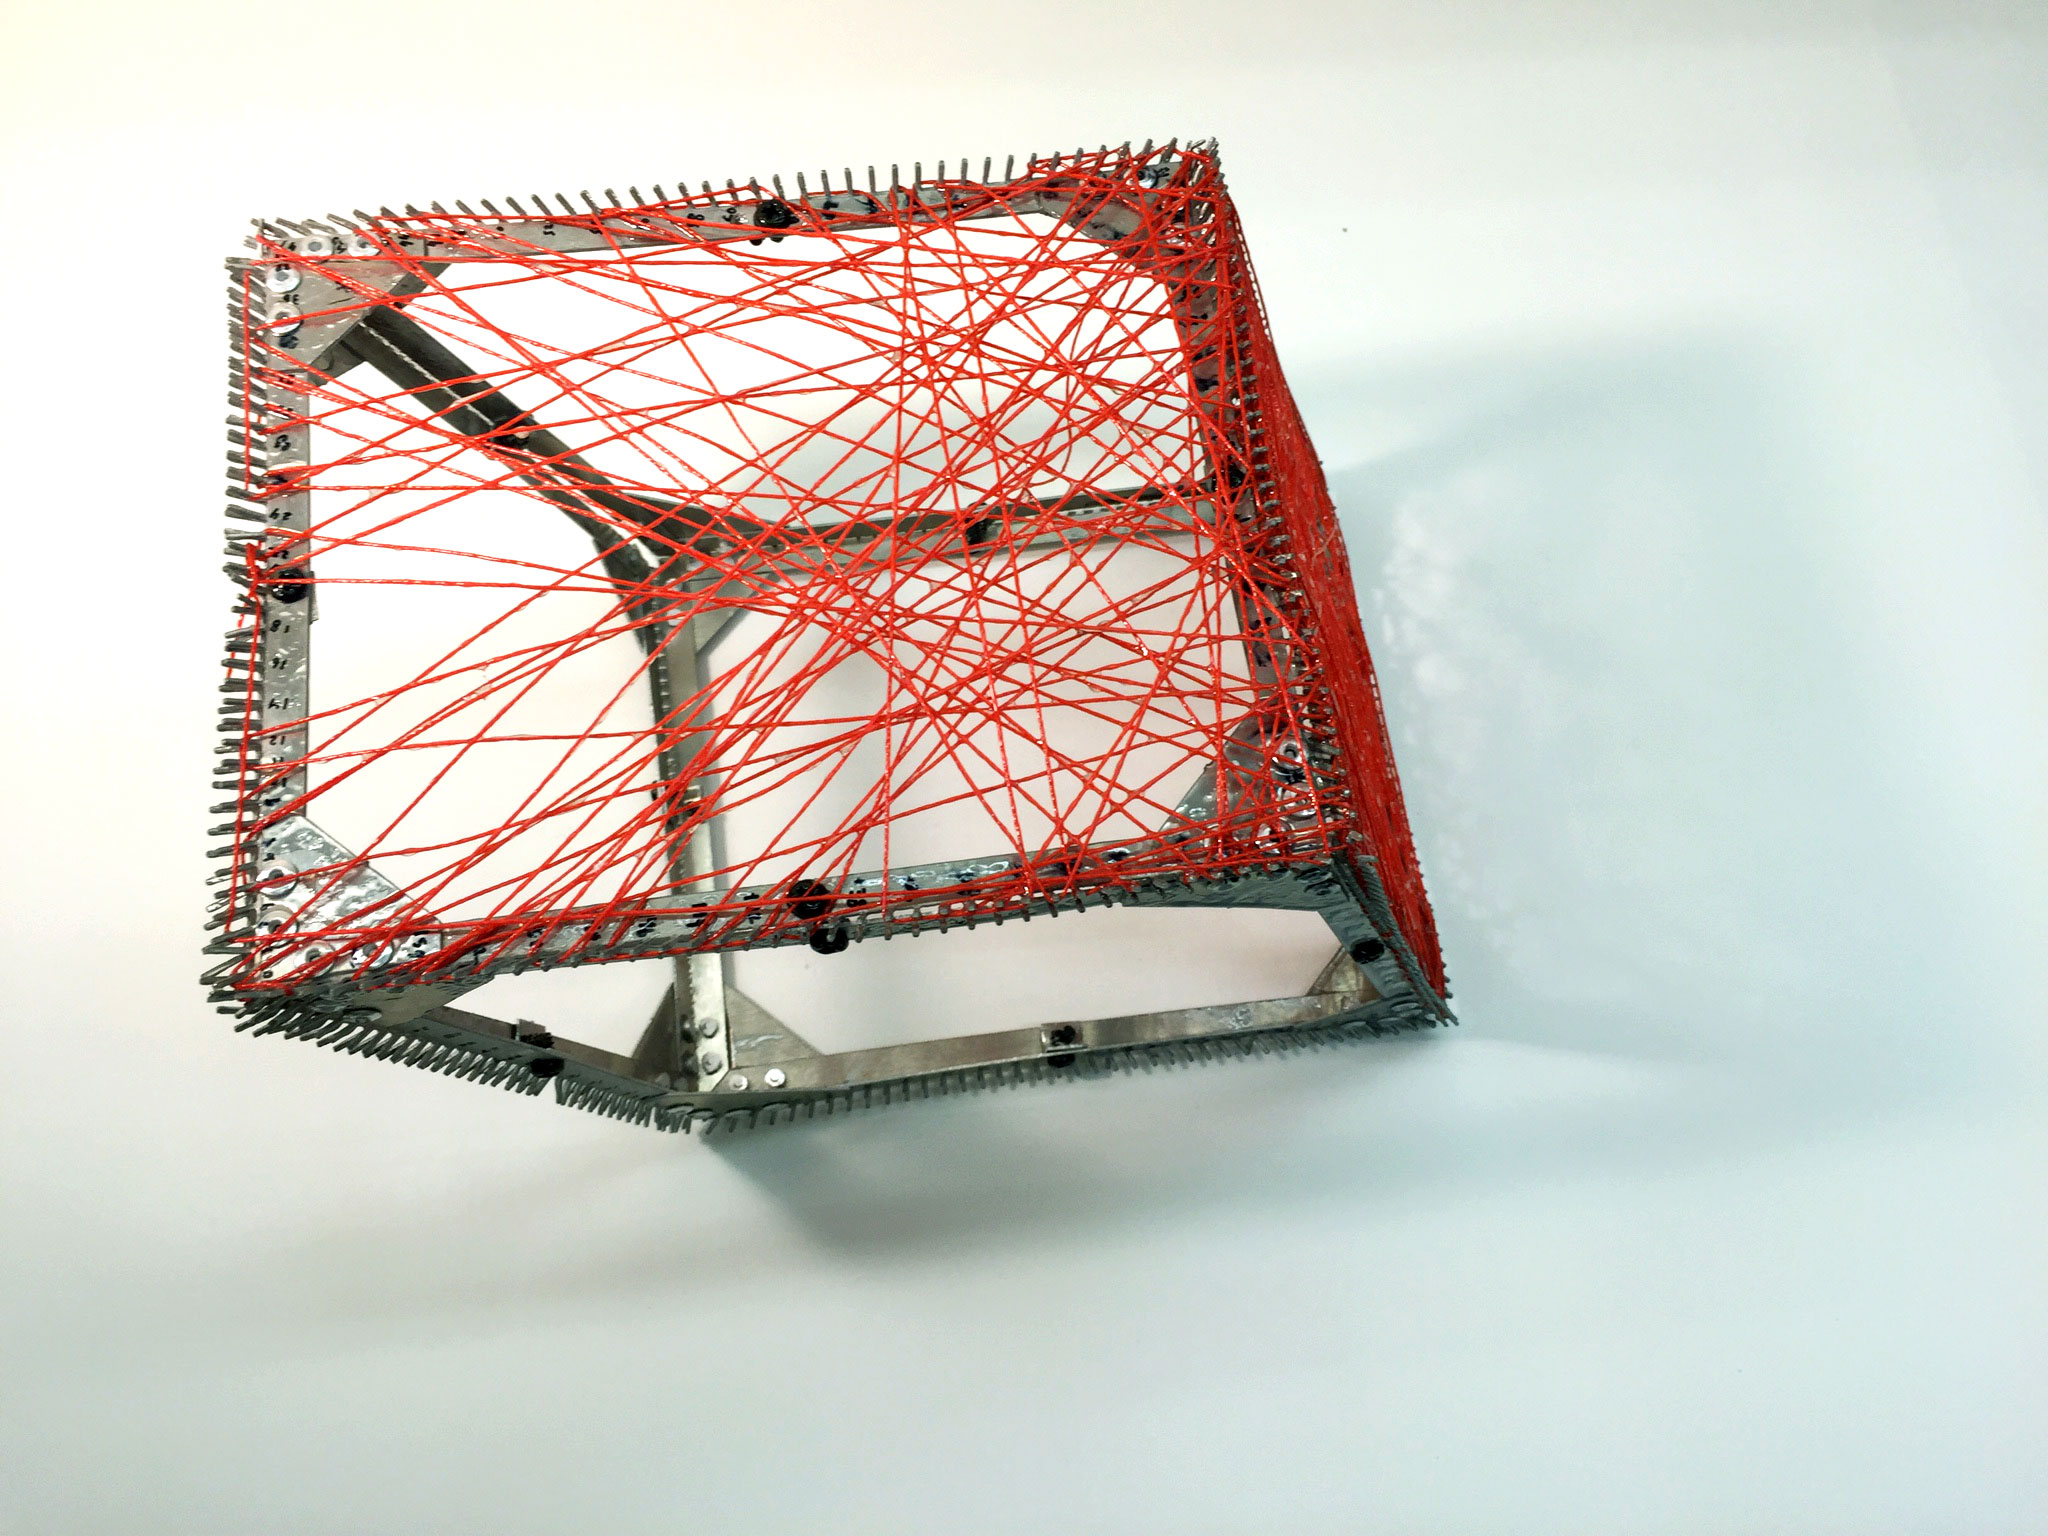 The second prototype served as a test for placing sting according to coordinates exported from the optimization Rhino model. To fabricate with the logic of straight line paths, a script was developed to create thousands of random lines from predetermined spacing along the frame edges. A filter was then applied to select lines stressed beyond a threshold. These lines were materialized with string hardened with resin.